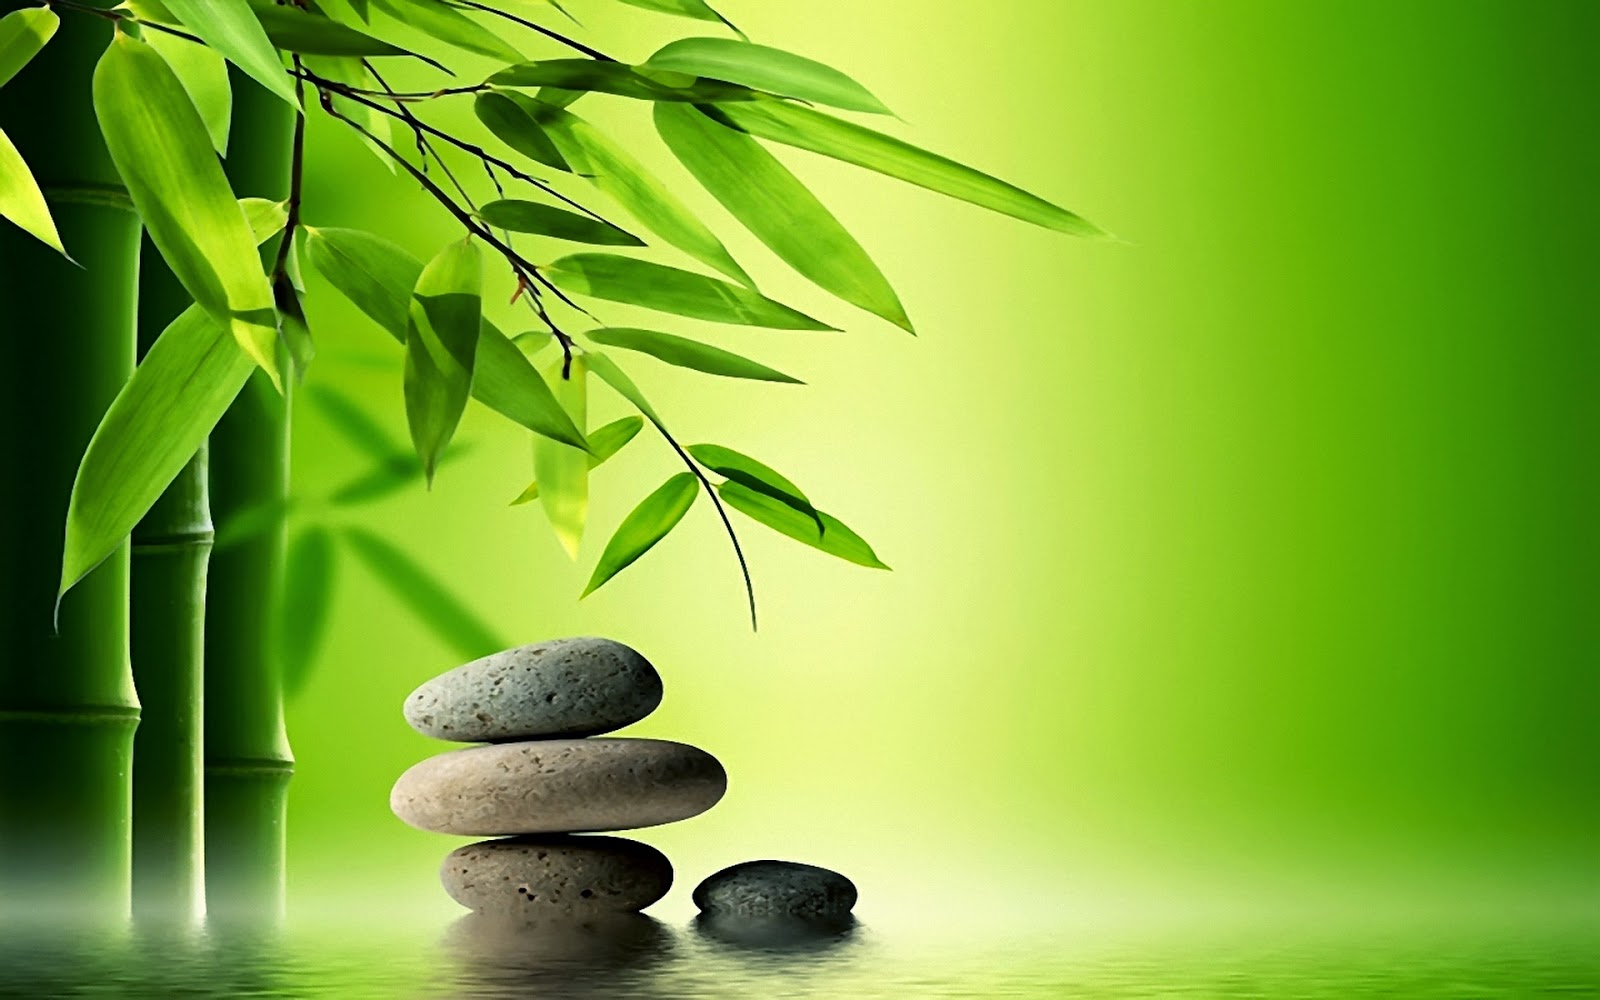 Chinese Zen meditation pictures 1080p Full HD widescreen ...